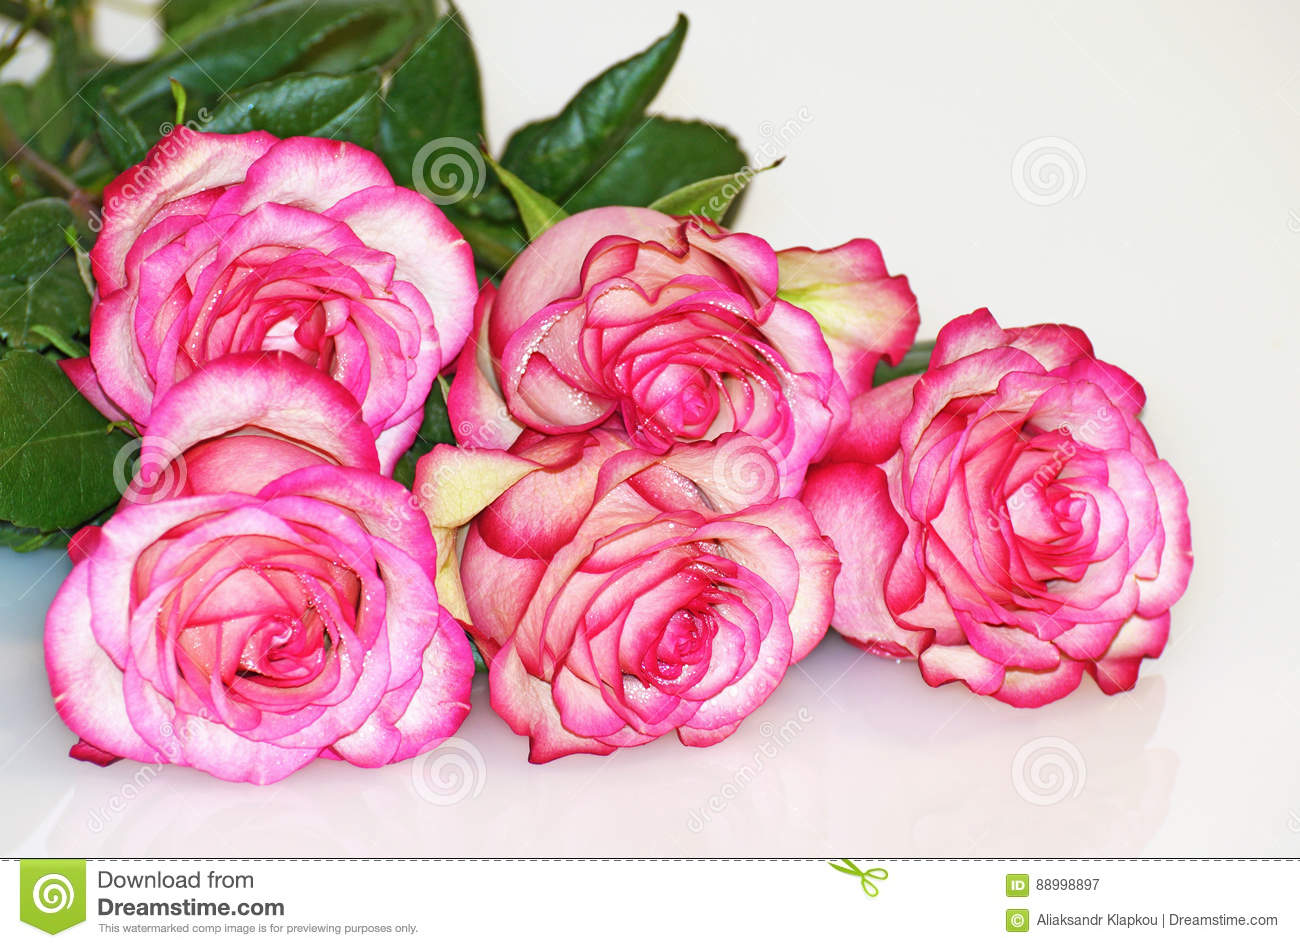 Rose flower is a symbol of beauty stock image image of color download rose flower is a symbol of beauty stock image image of color izmirmasajfo